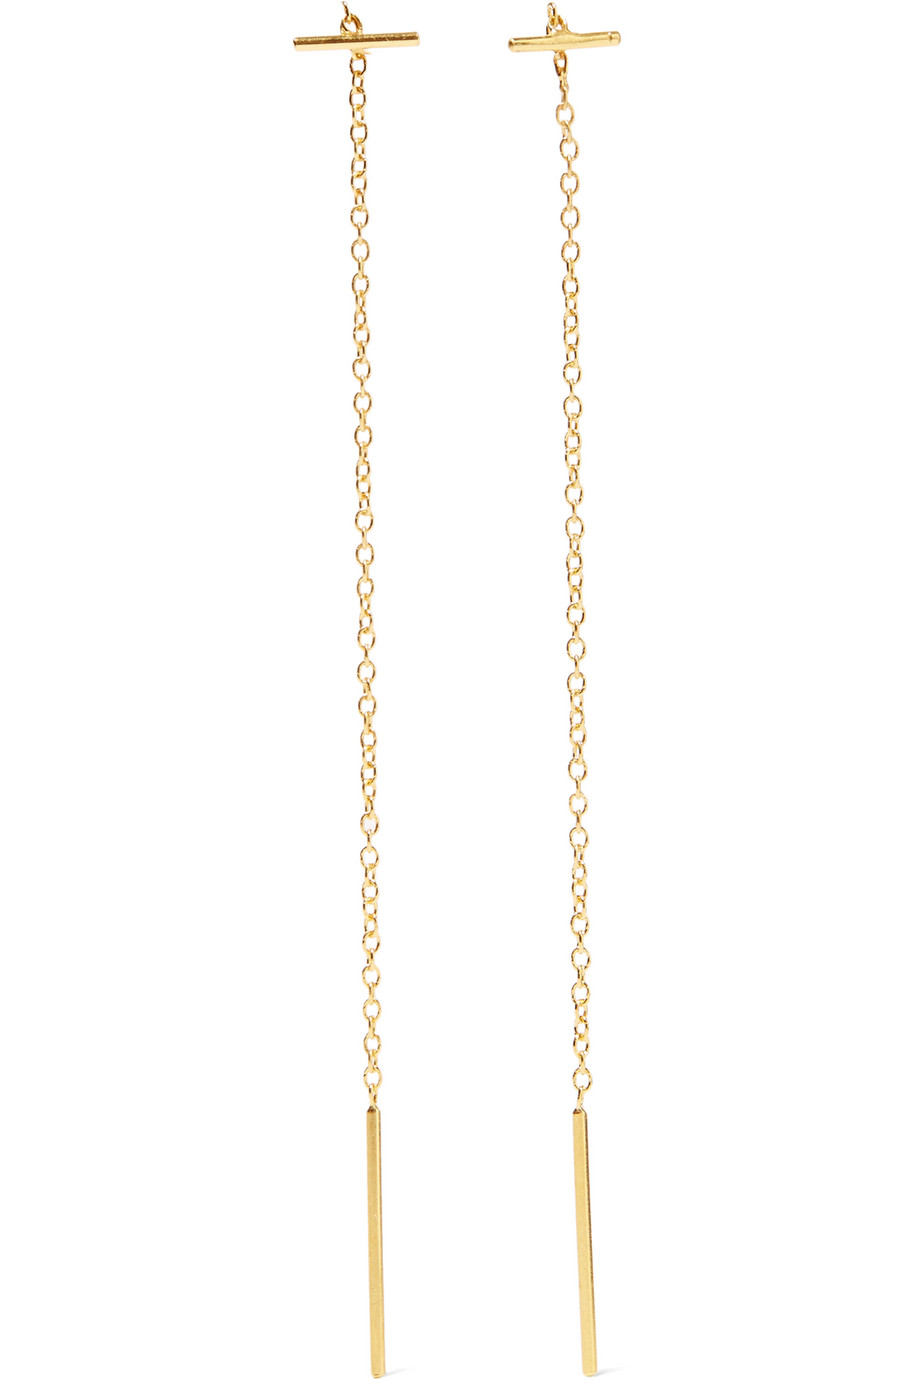 Chan Luu Gold-Plated Earrings, Women's